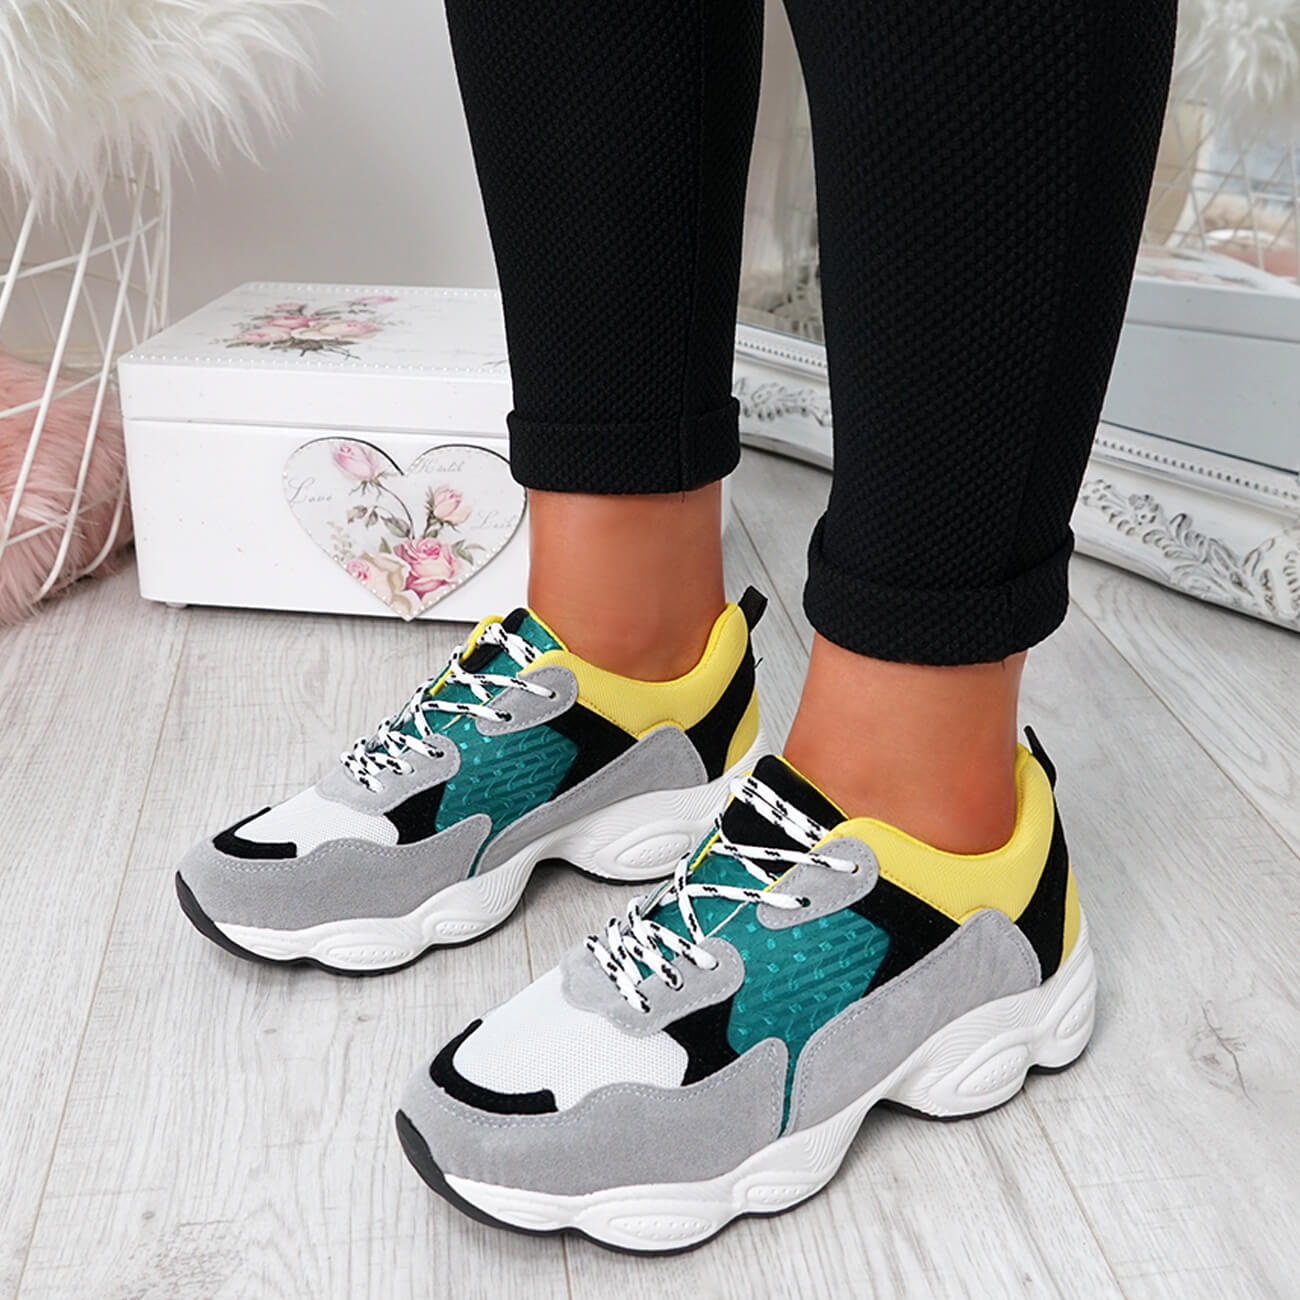 WOMENS-LADIES-RUNNING-GYM-CHUNKY-TRAINERS-SNEAKERS-SHOES-SIZE miniatura 24